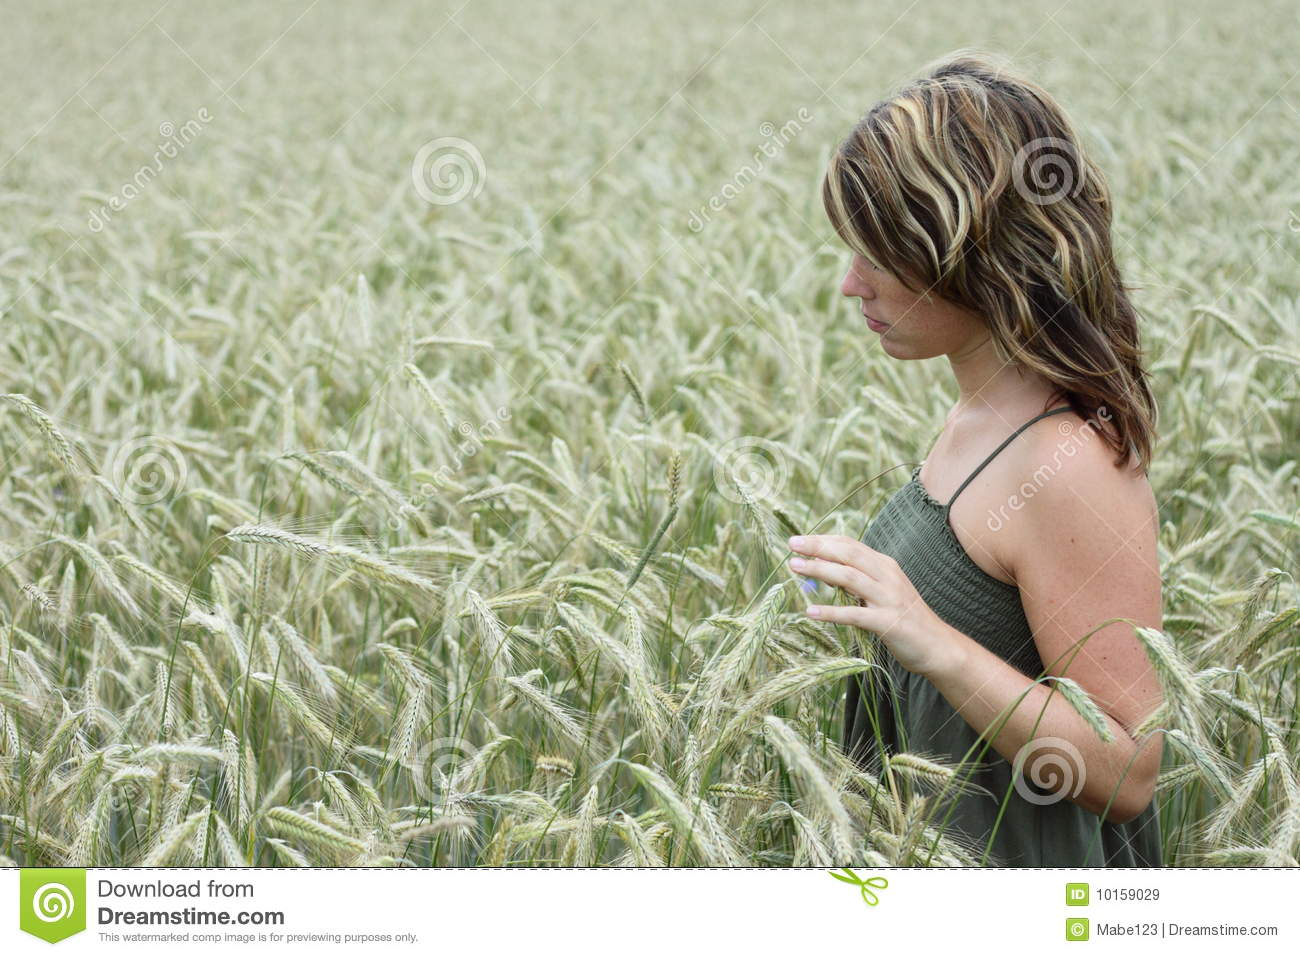 Cornfield Royalty Free Stock Images - Image: 10159029